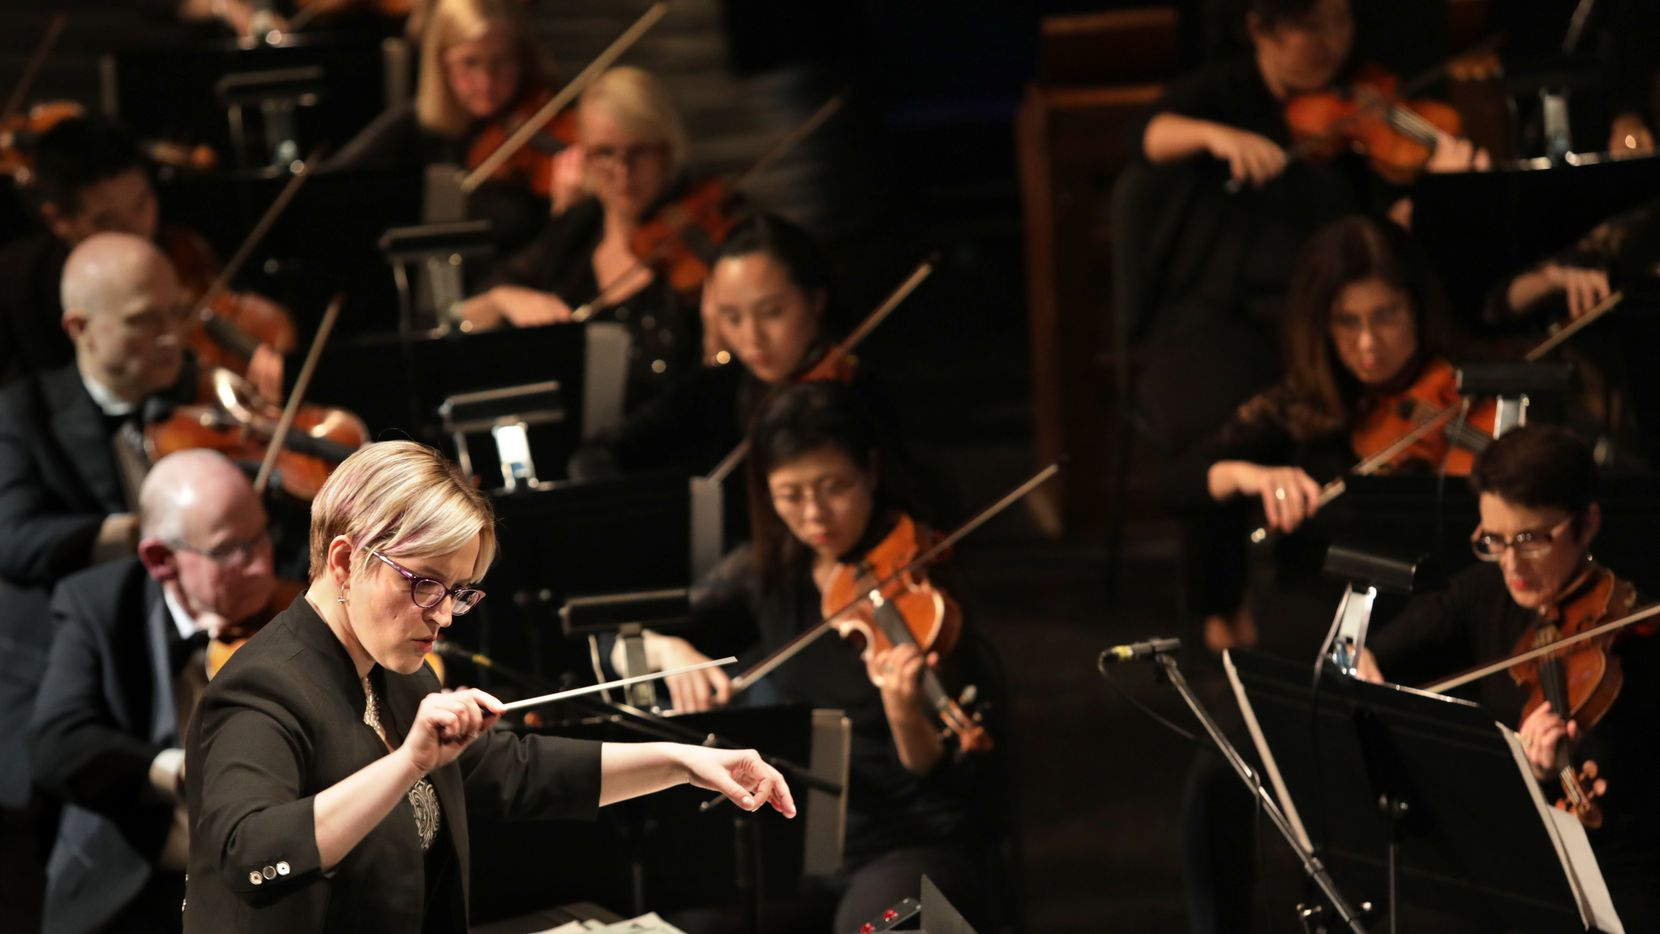 Maria Sensi-Sellner conducted during the Dallas Opera's Hart Institute for Women Conductors Showcase Concert at the Winspear Opera House in Dallas on Nov. 10, 2018.